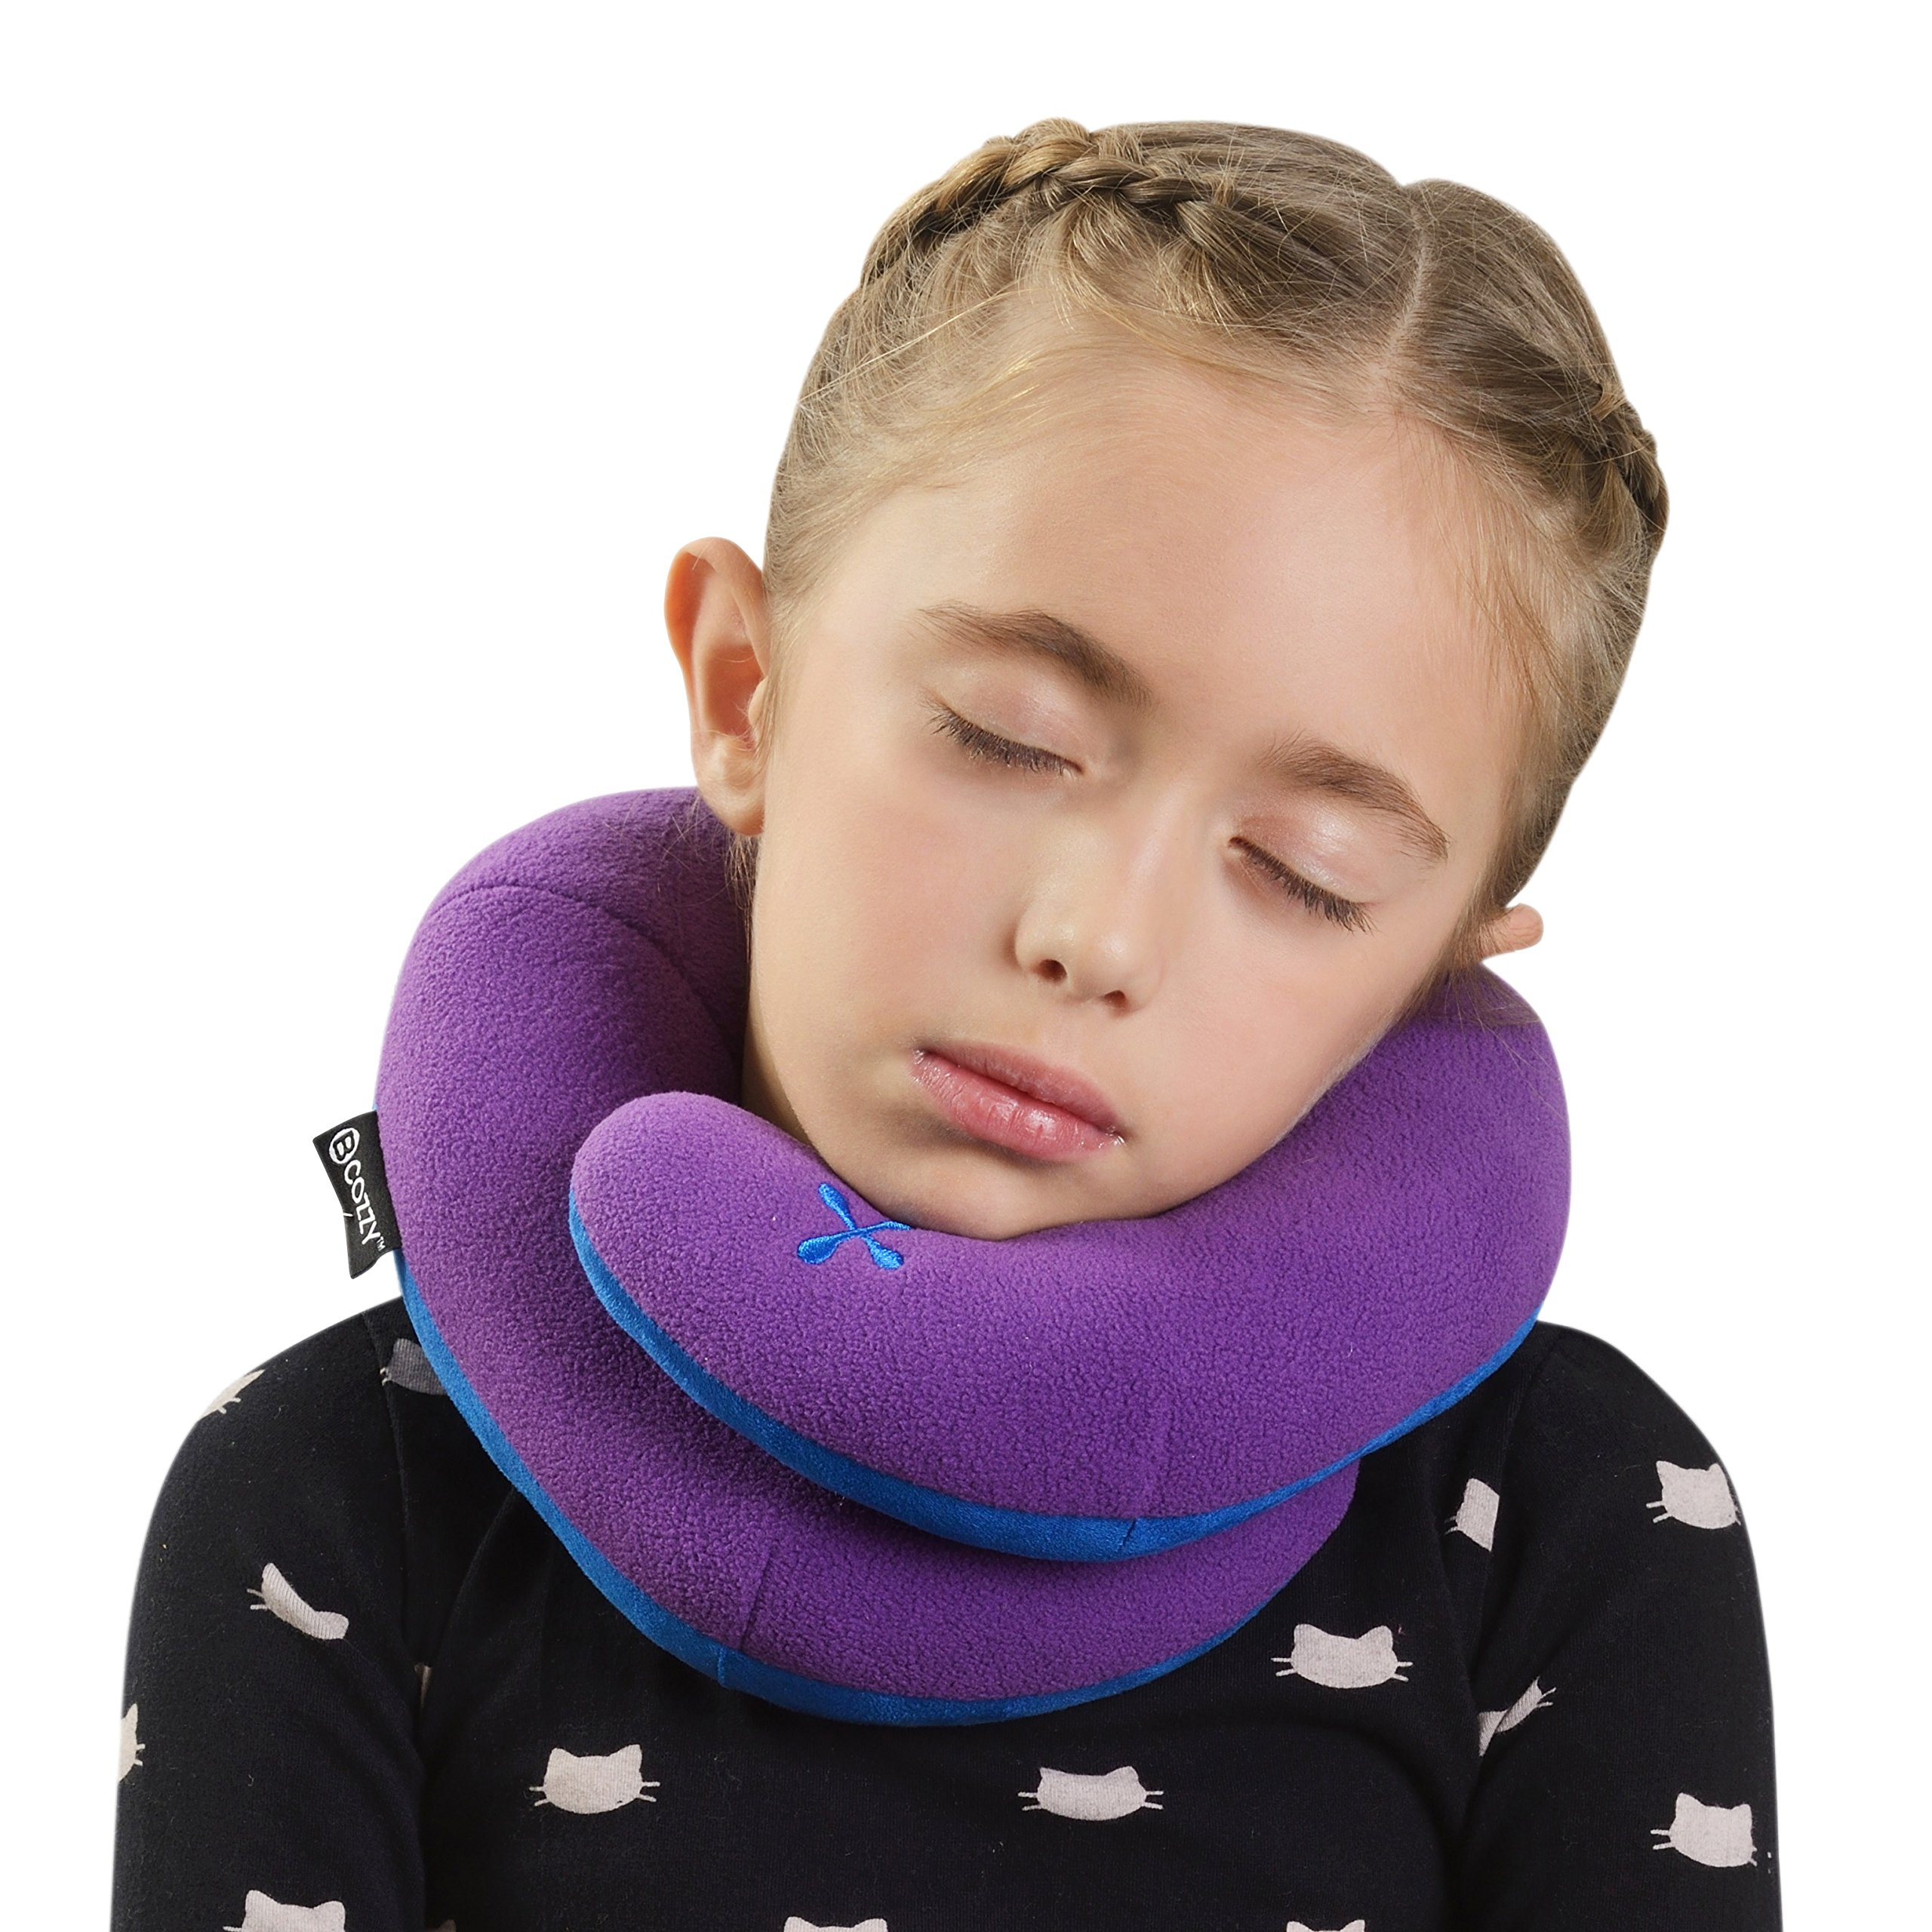 BCOZZY Kids Chin Supporting Travel Neck Pillow - Supports the Head, Neck and Chin in A Patented Product. CHILD Size, PURPLE